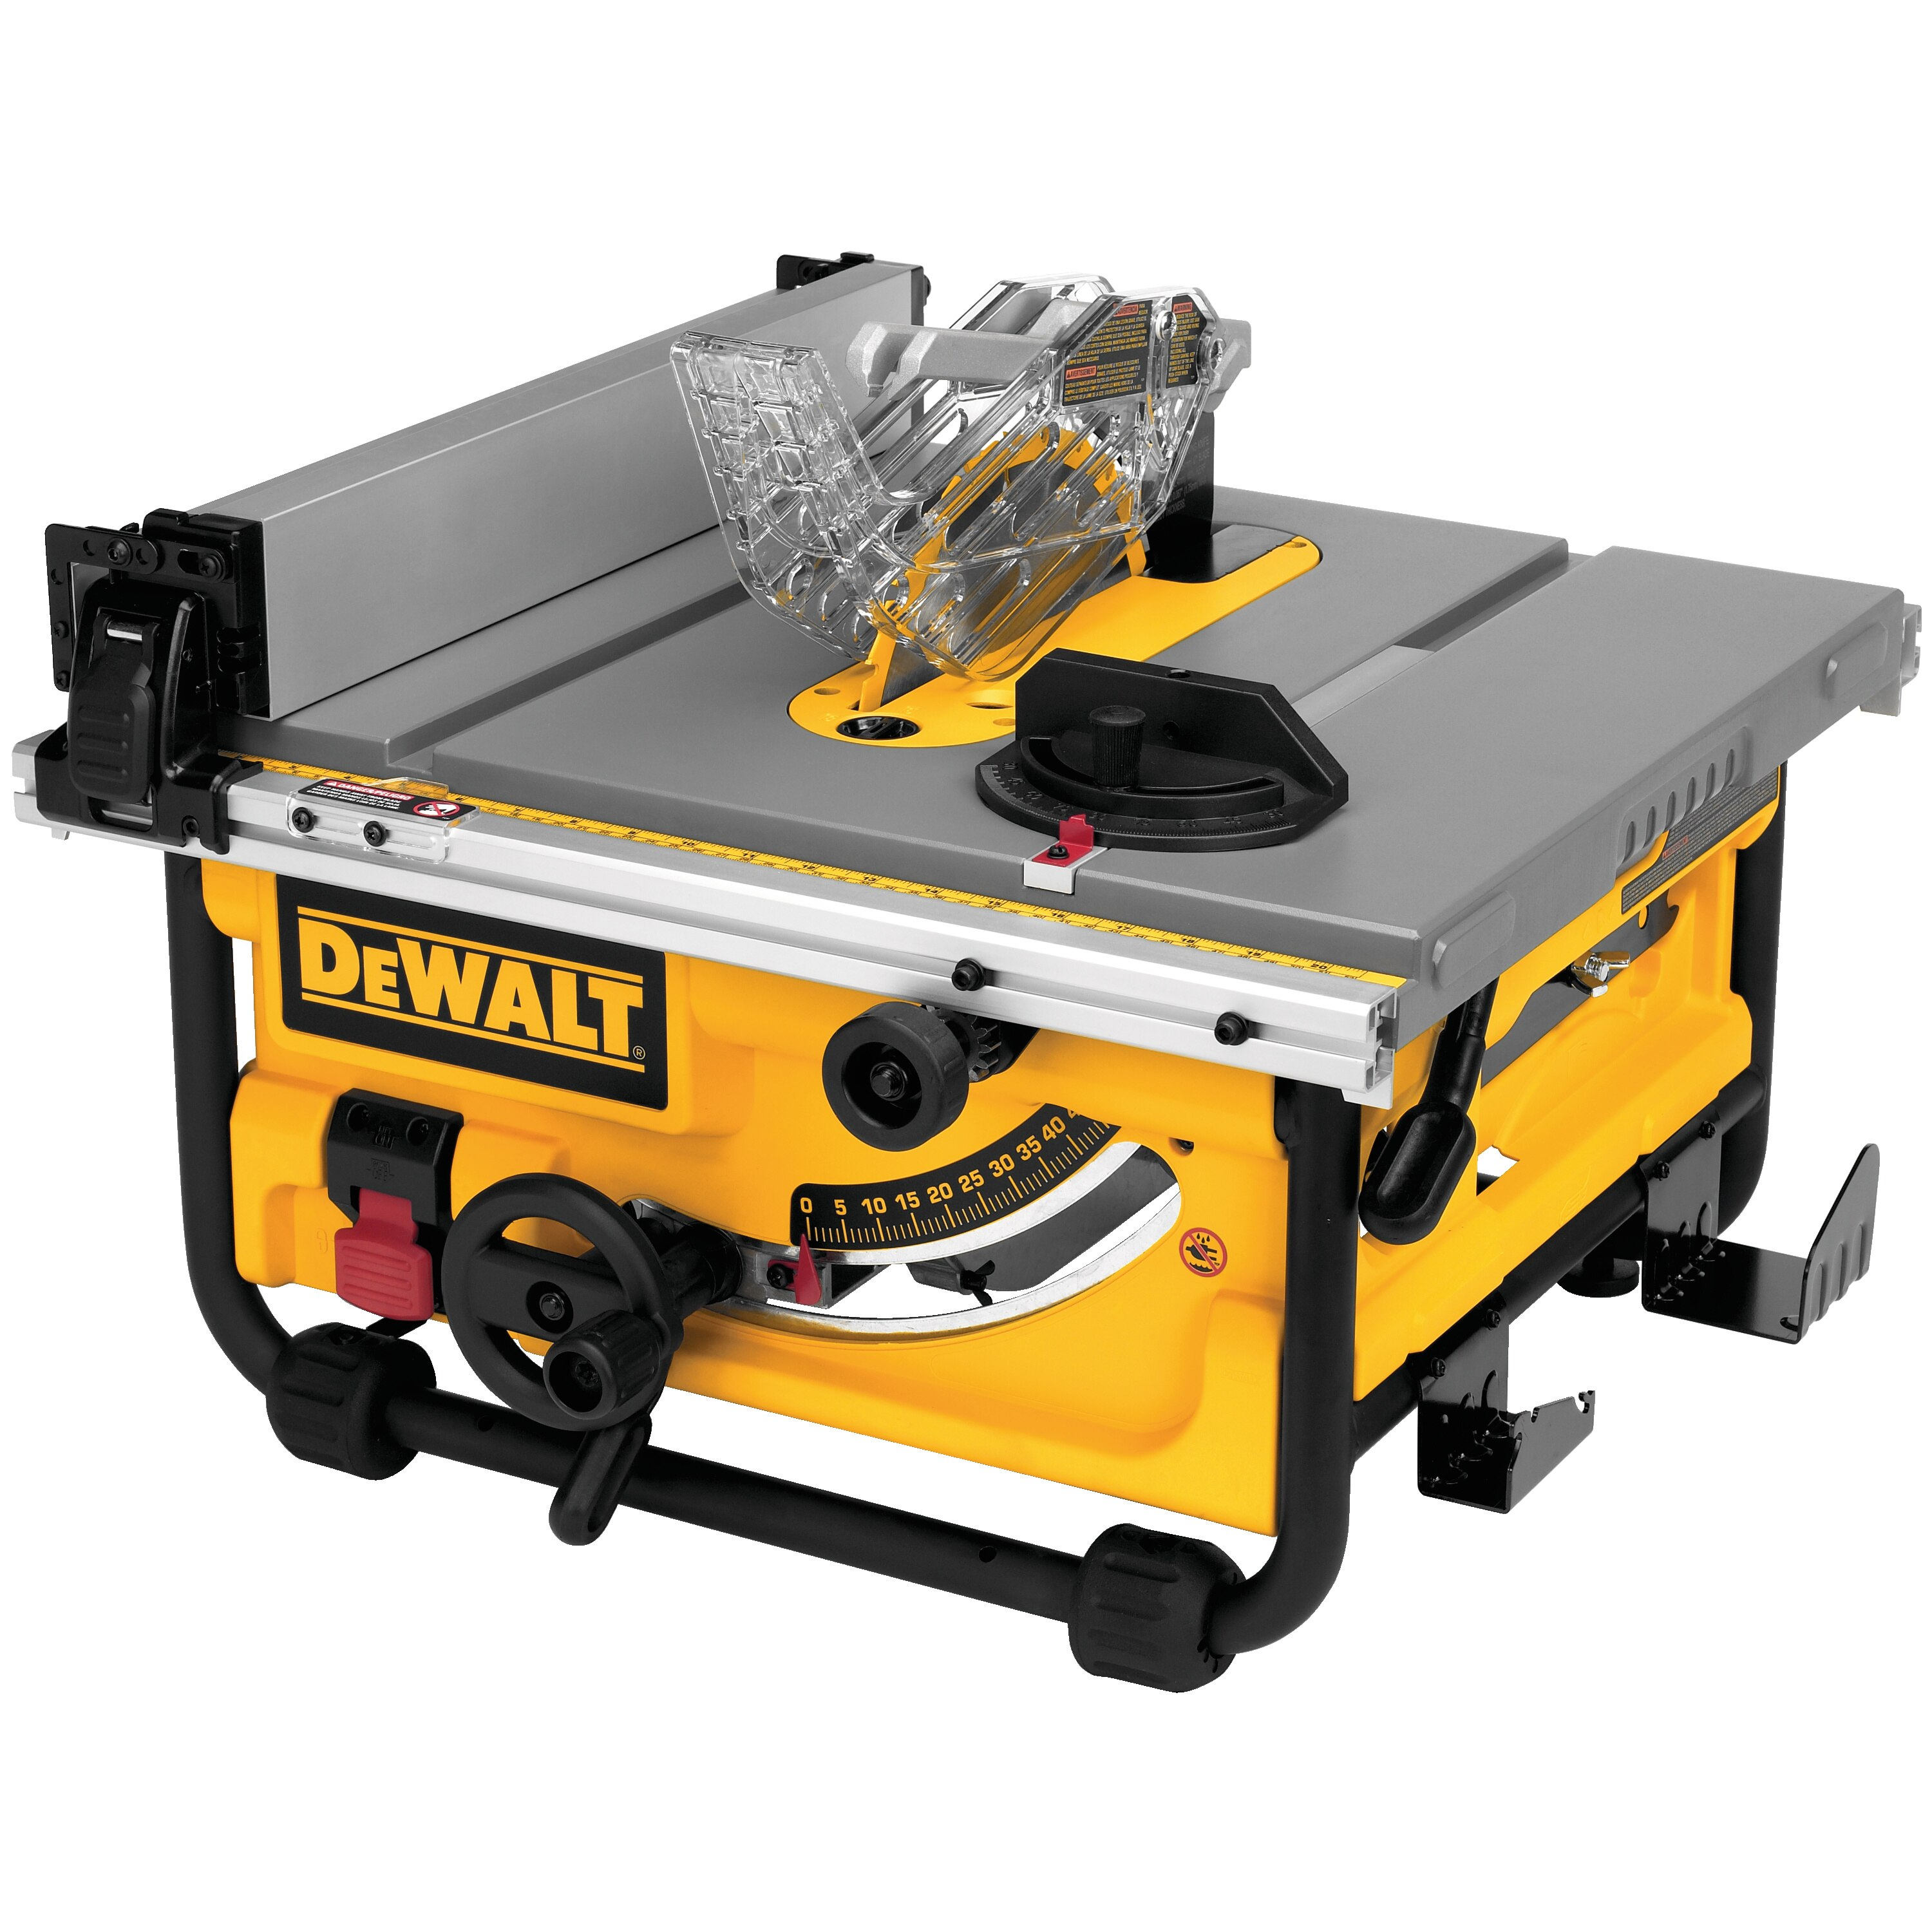 Excellent 10 Compact Job Site Table Saw With Site Pro Modular Guarding System Squirreltailoven Fun Painted Chair Ideas Images Squirreltailovenorg